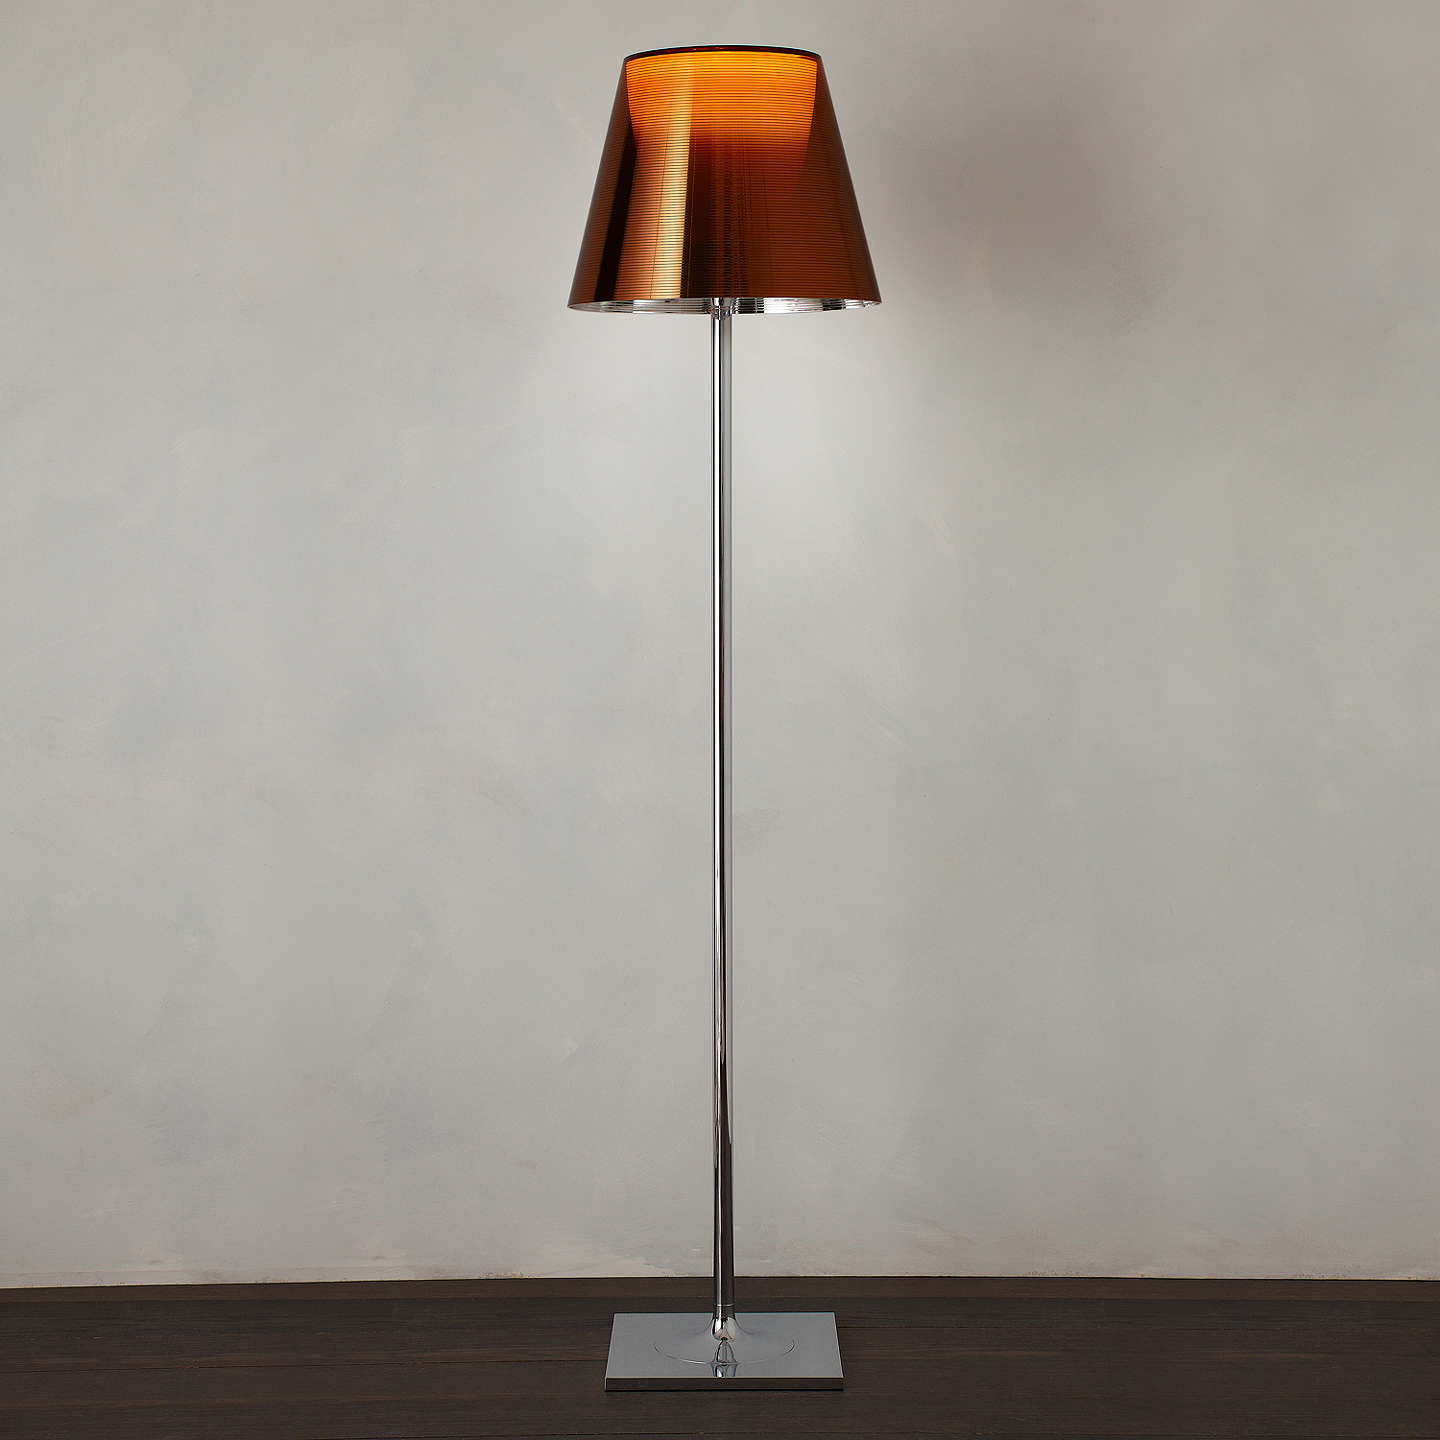 Flos ktribe f2 floor lamp bronze at john lewis buyflos ktribe f2 floor lamp bronze online at johnlewis aloadofball Choice Image